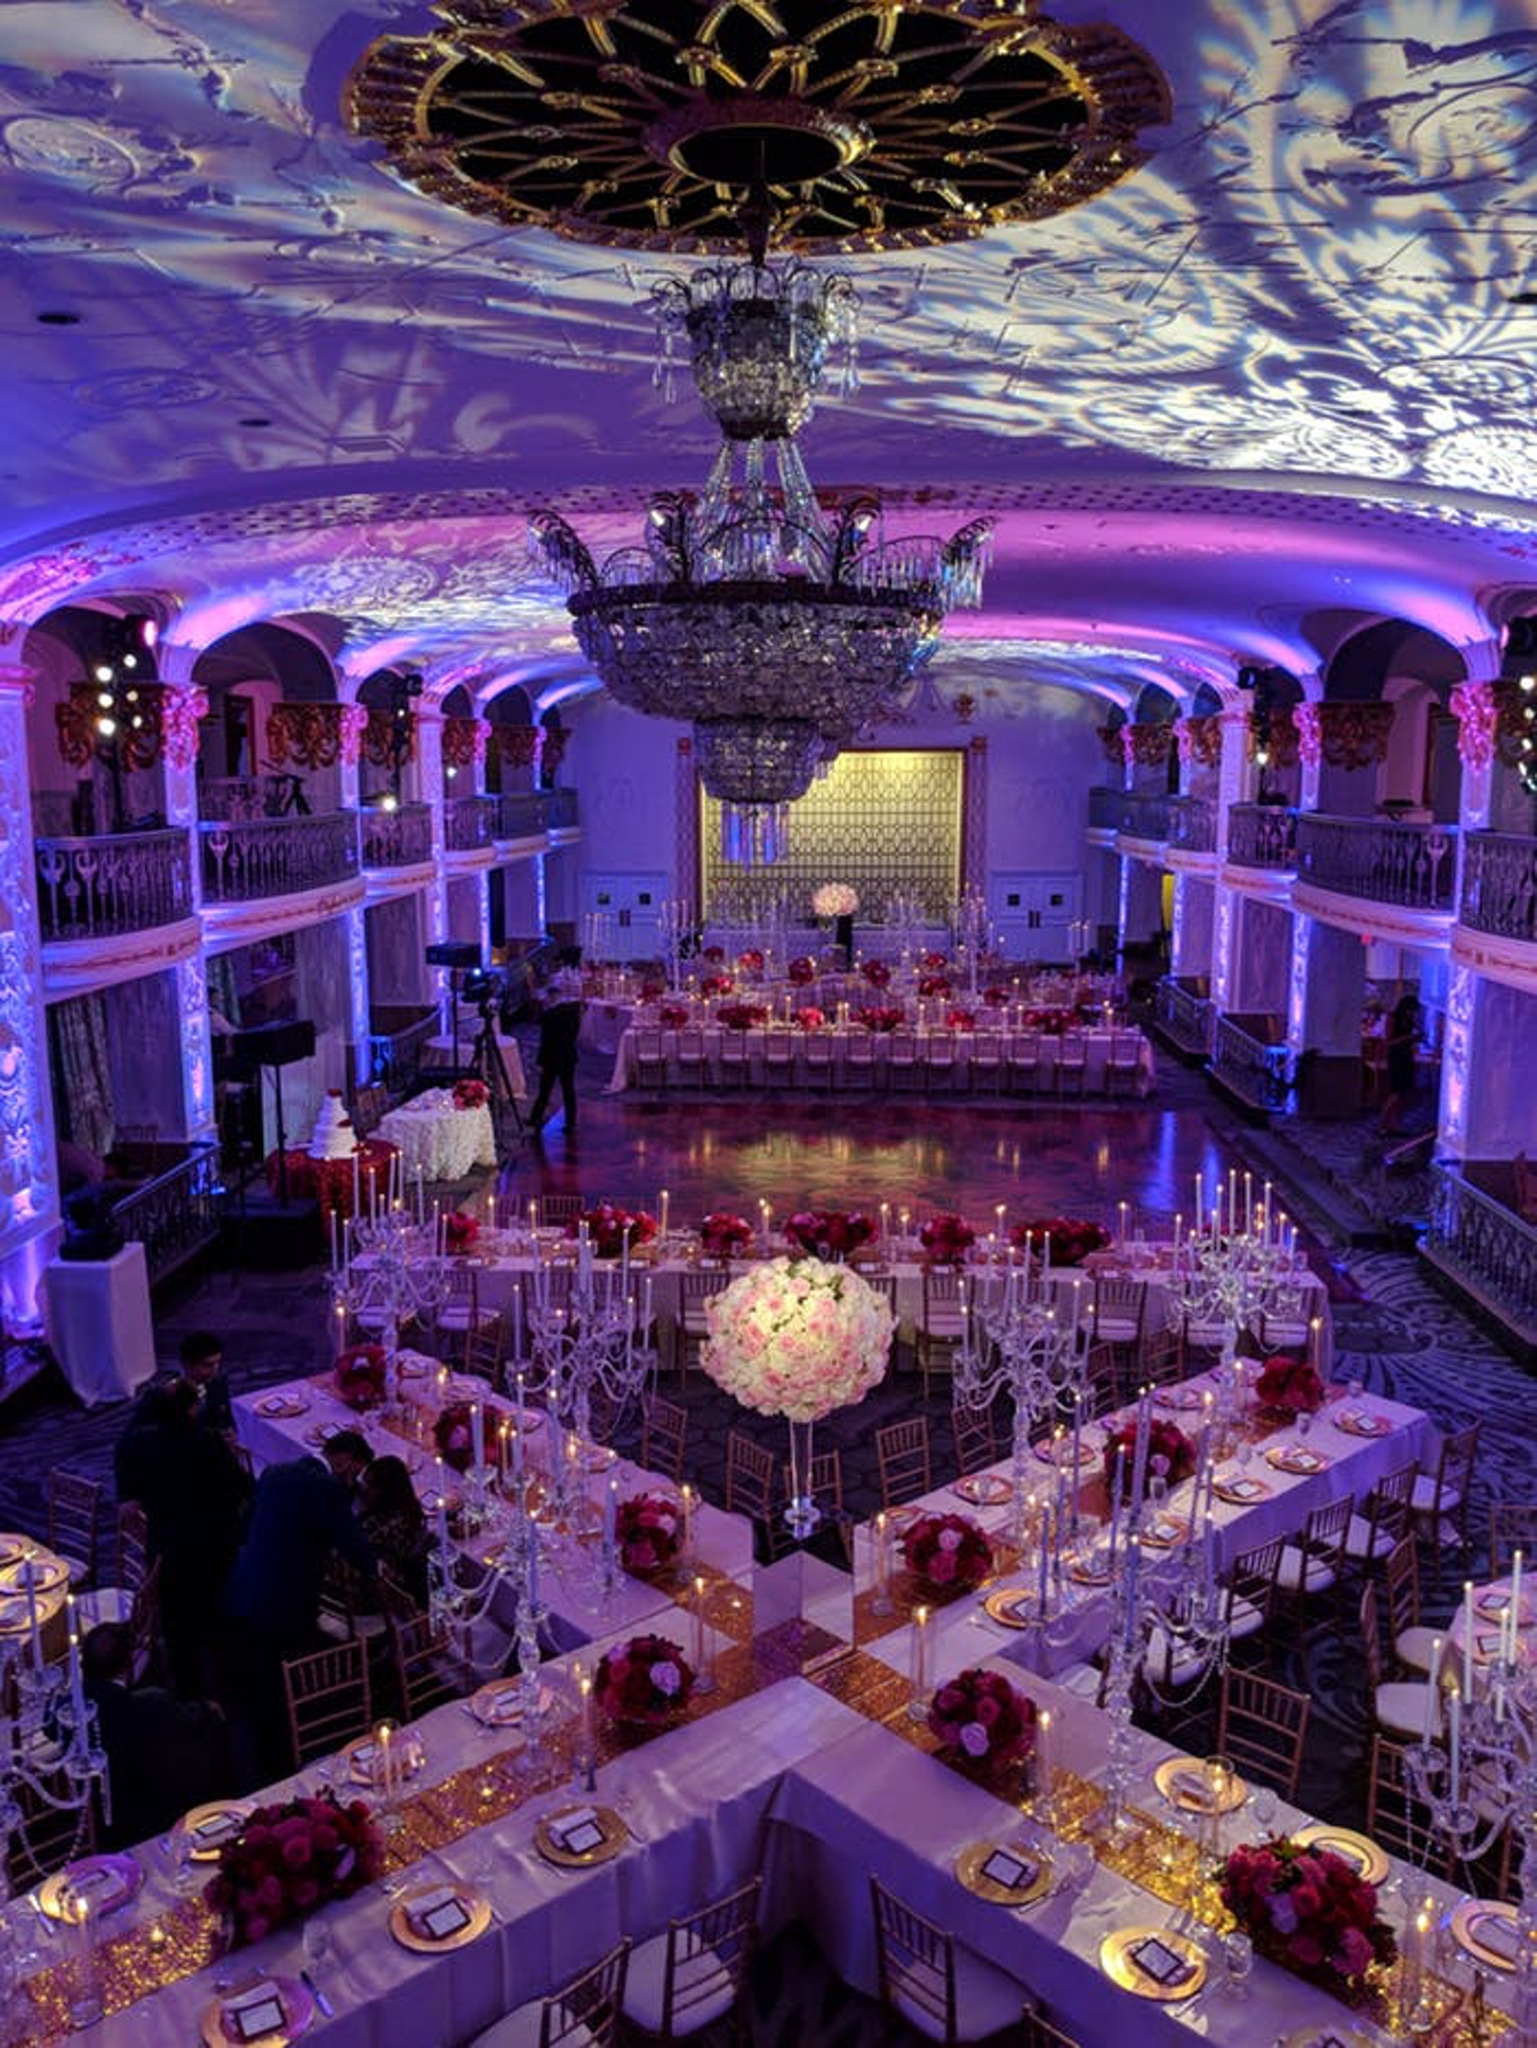 Criss cross white tables with crystal accents and purple lighting